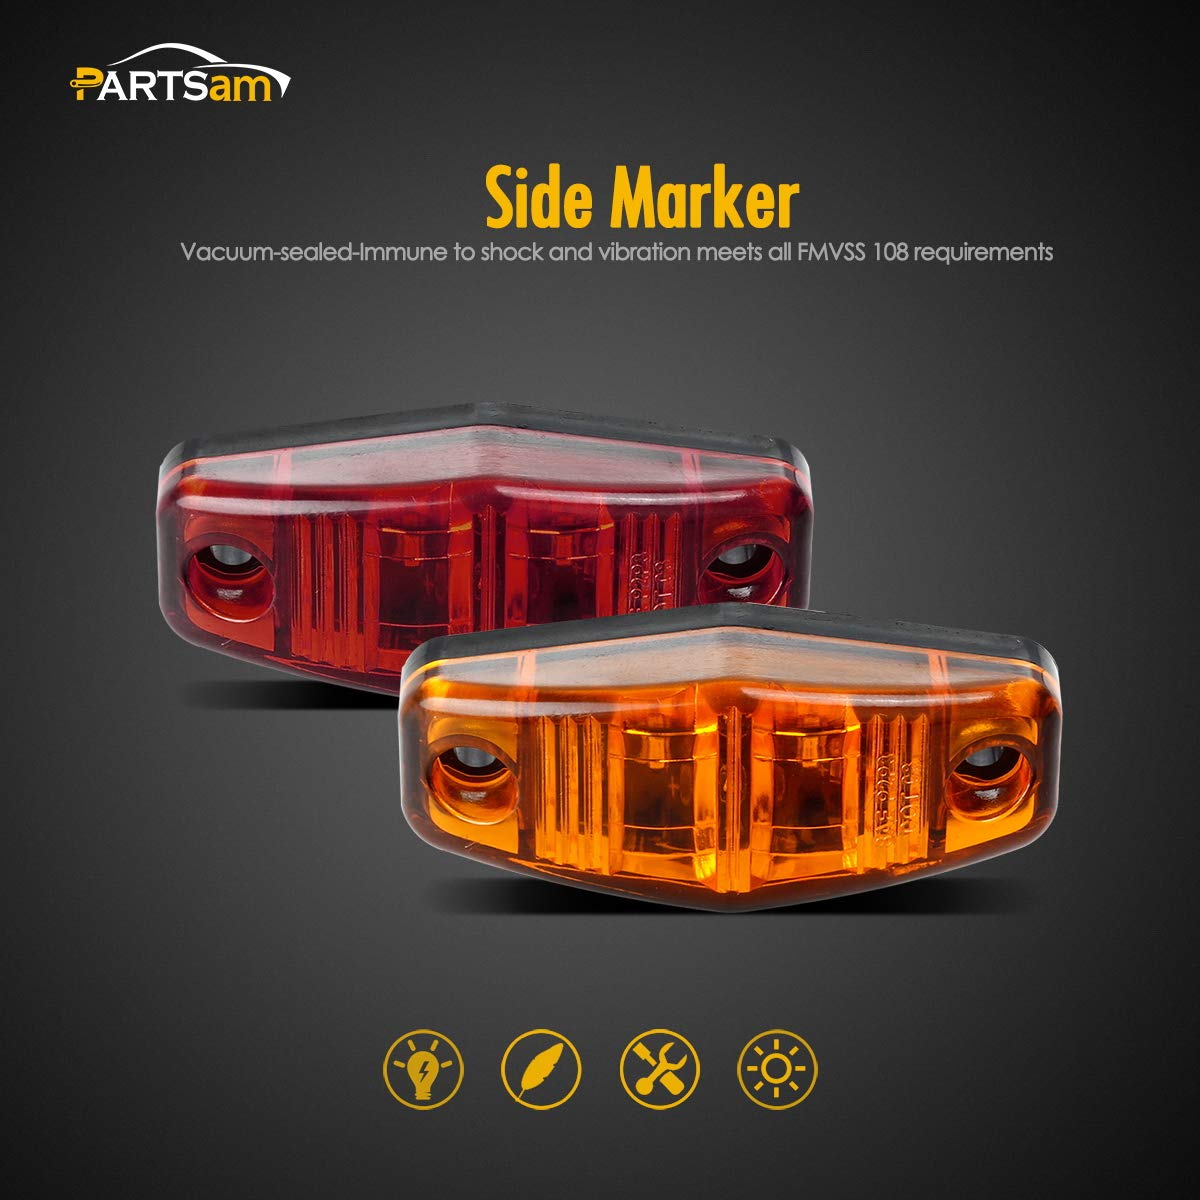 Partsam Trailer Light Complete Kit Utility Rv 12v Wiring Flat Four Pole Connection Brake Turn Stop Tail Side Marker Assembly 2pcs 6 Oval Red Lights 10